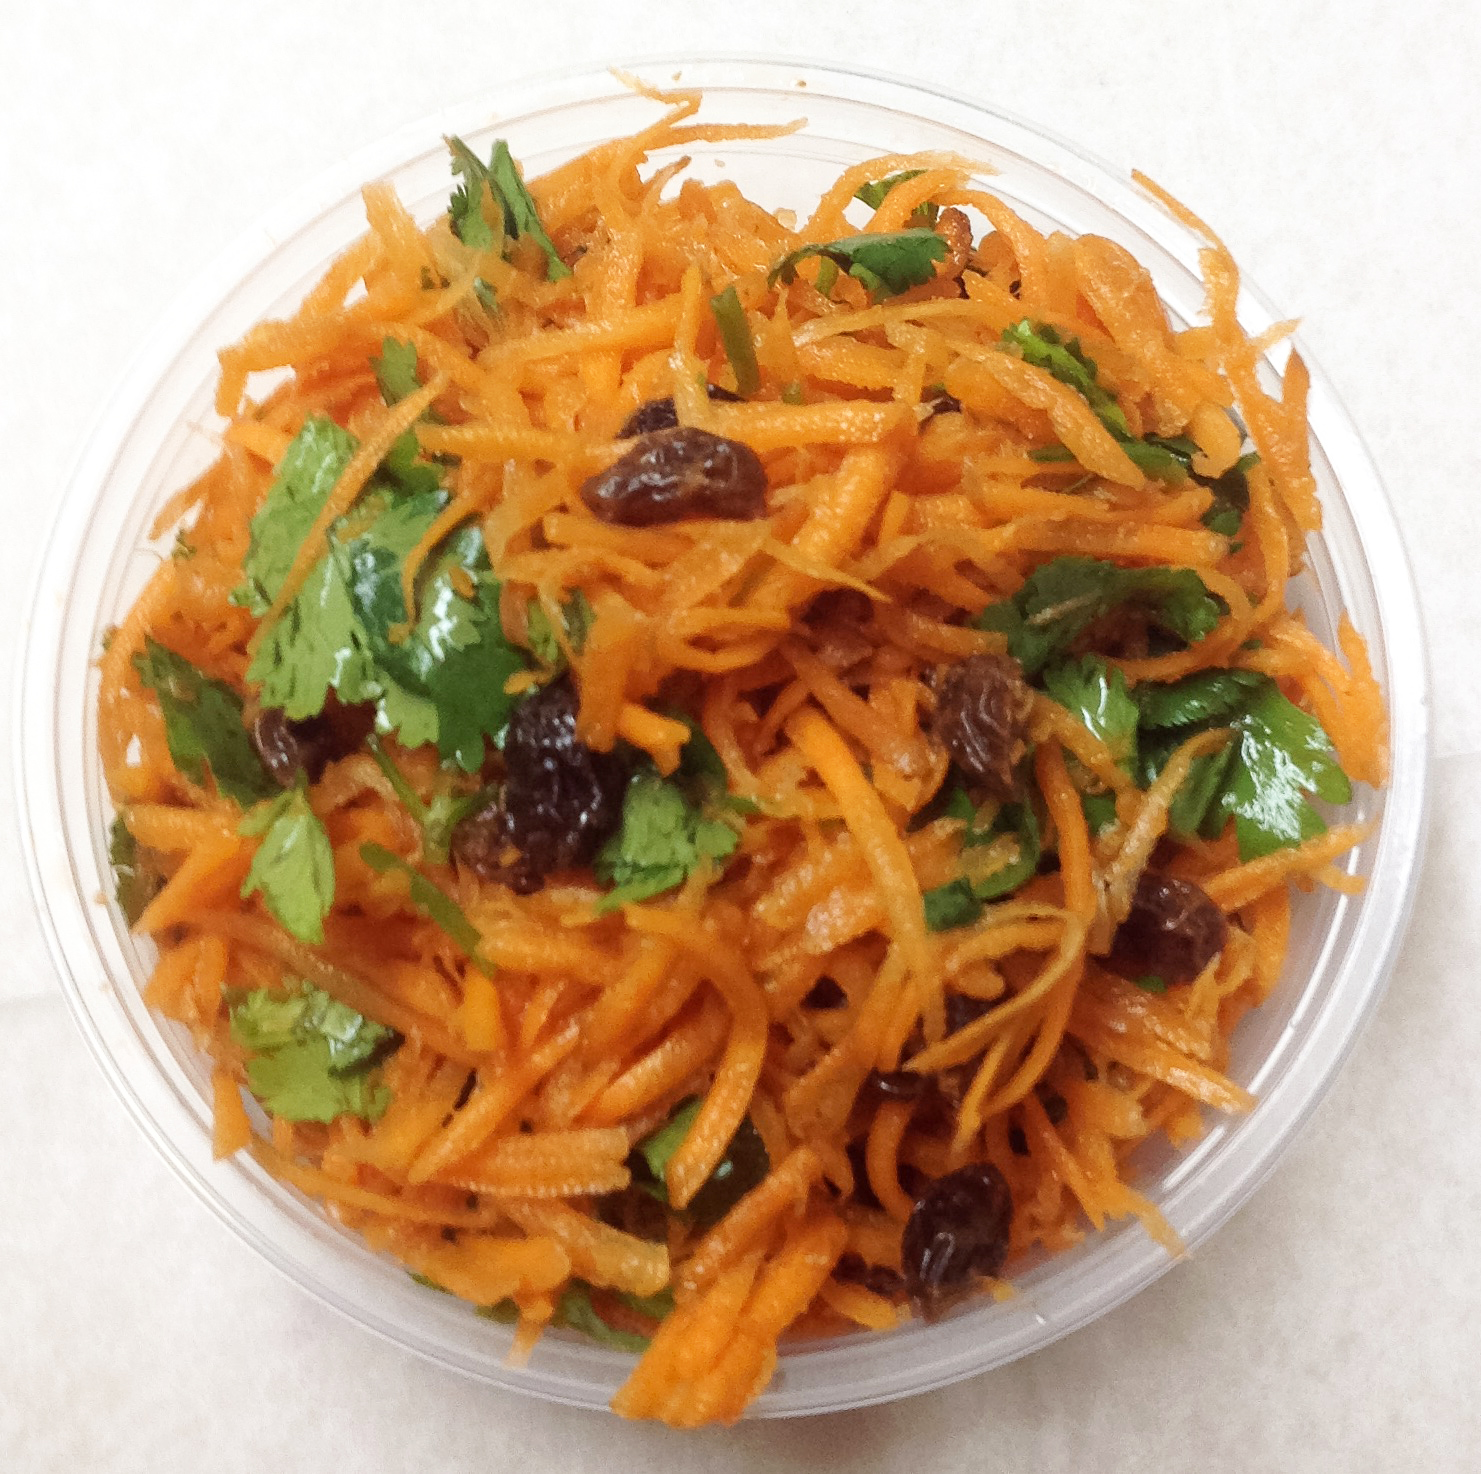 carrot-and-raisin